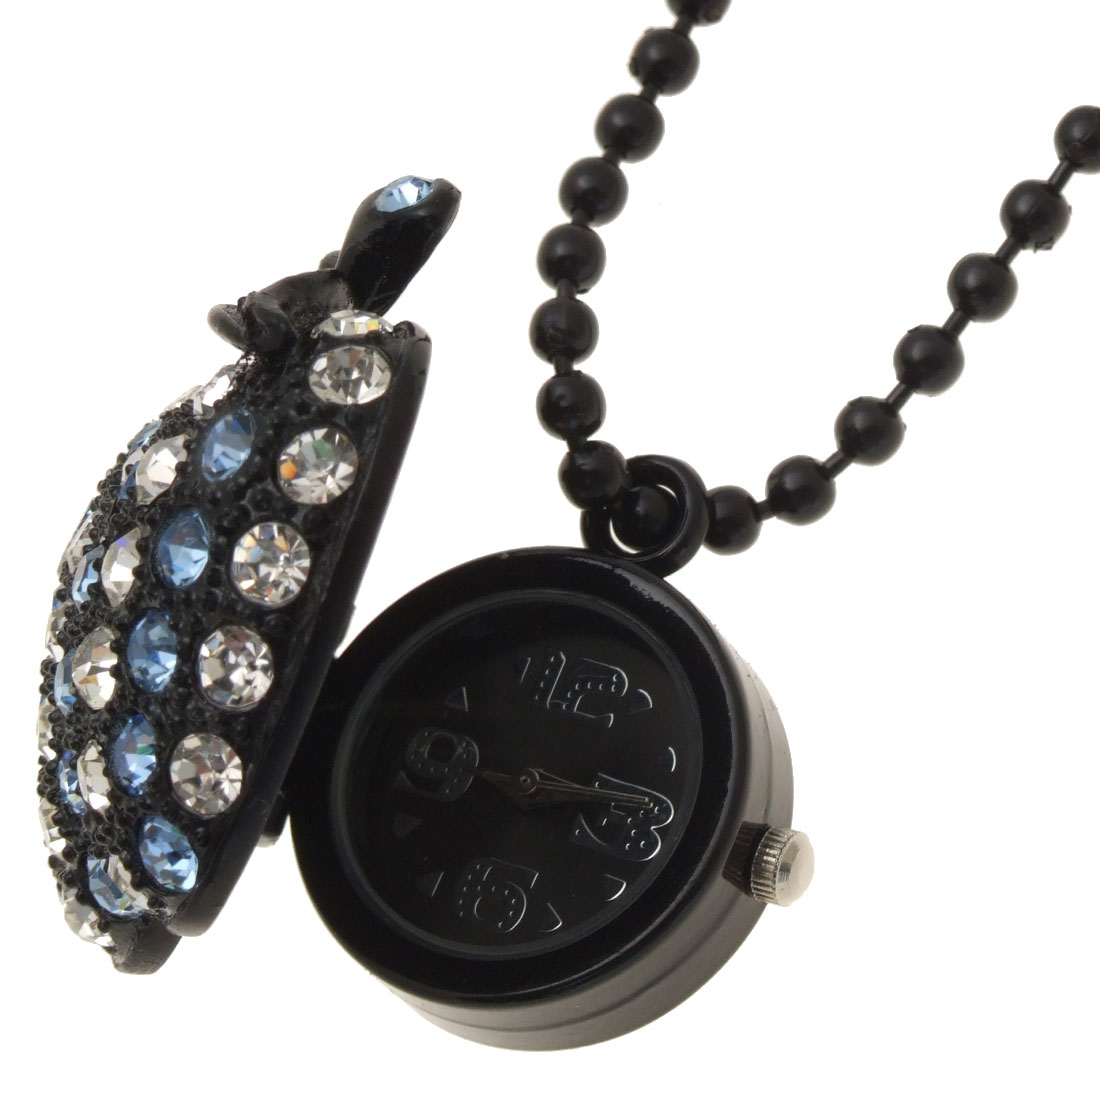 Fashion Jewelry White Blue Rhinestone Apple Pendant Black Chain Necklace Girl's Watch